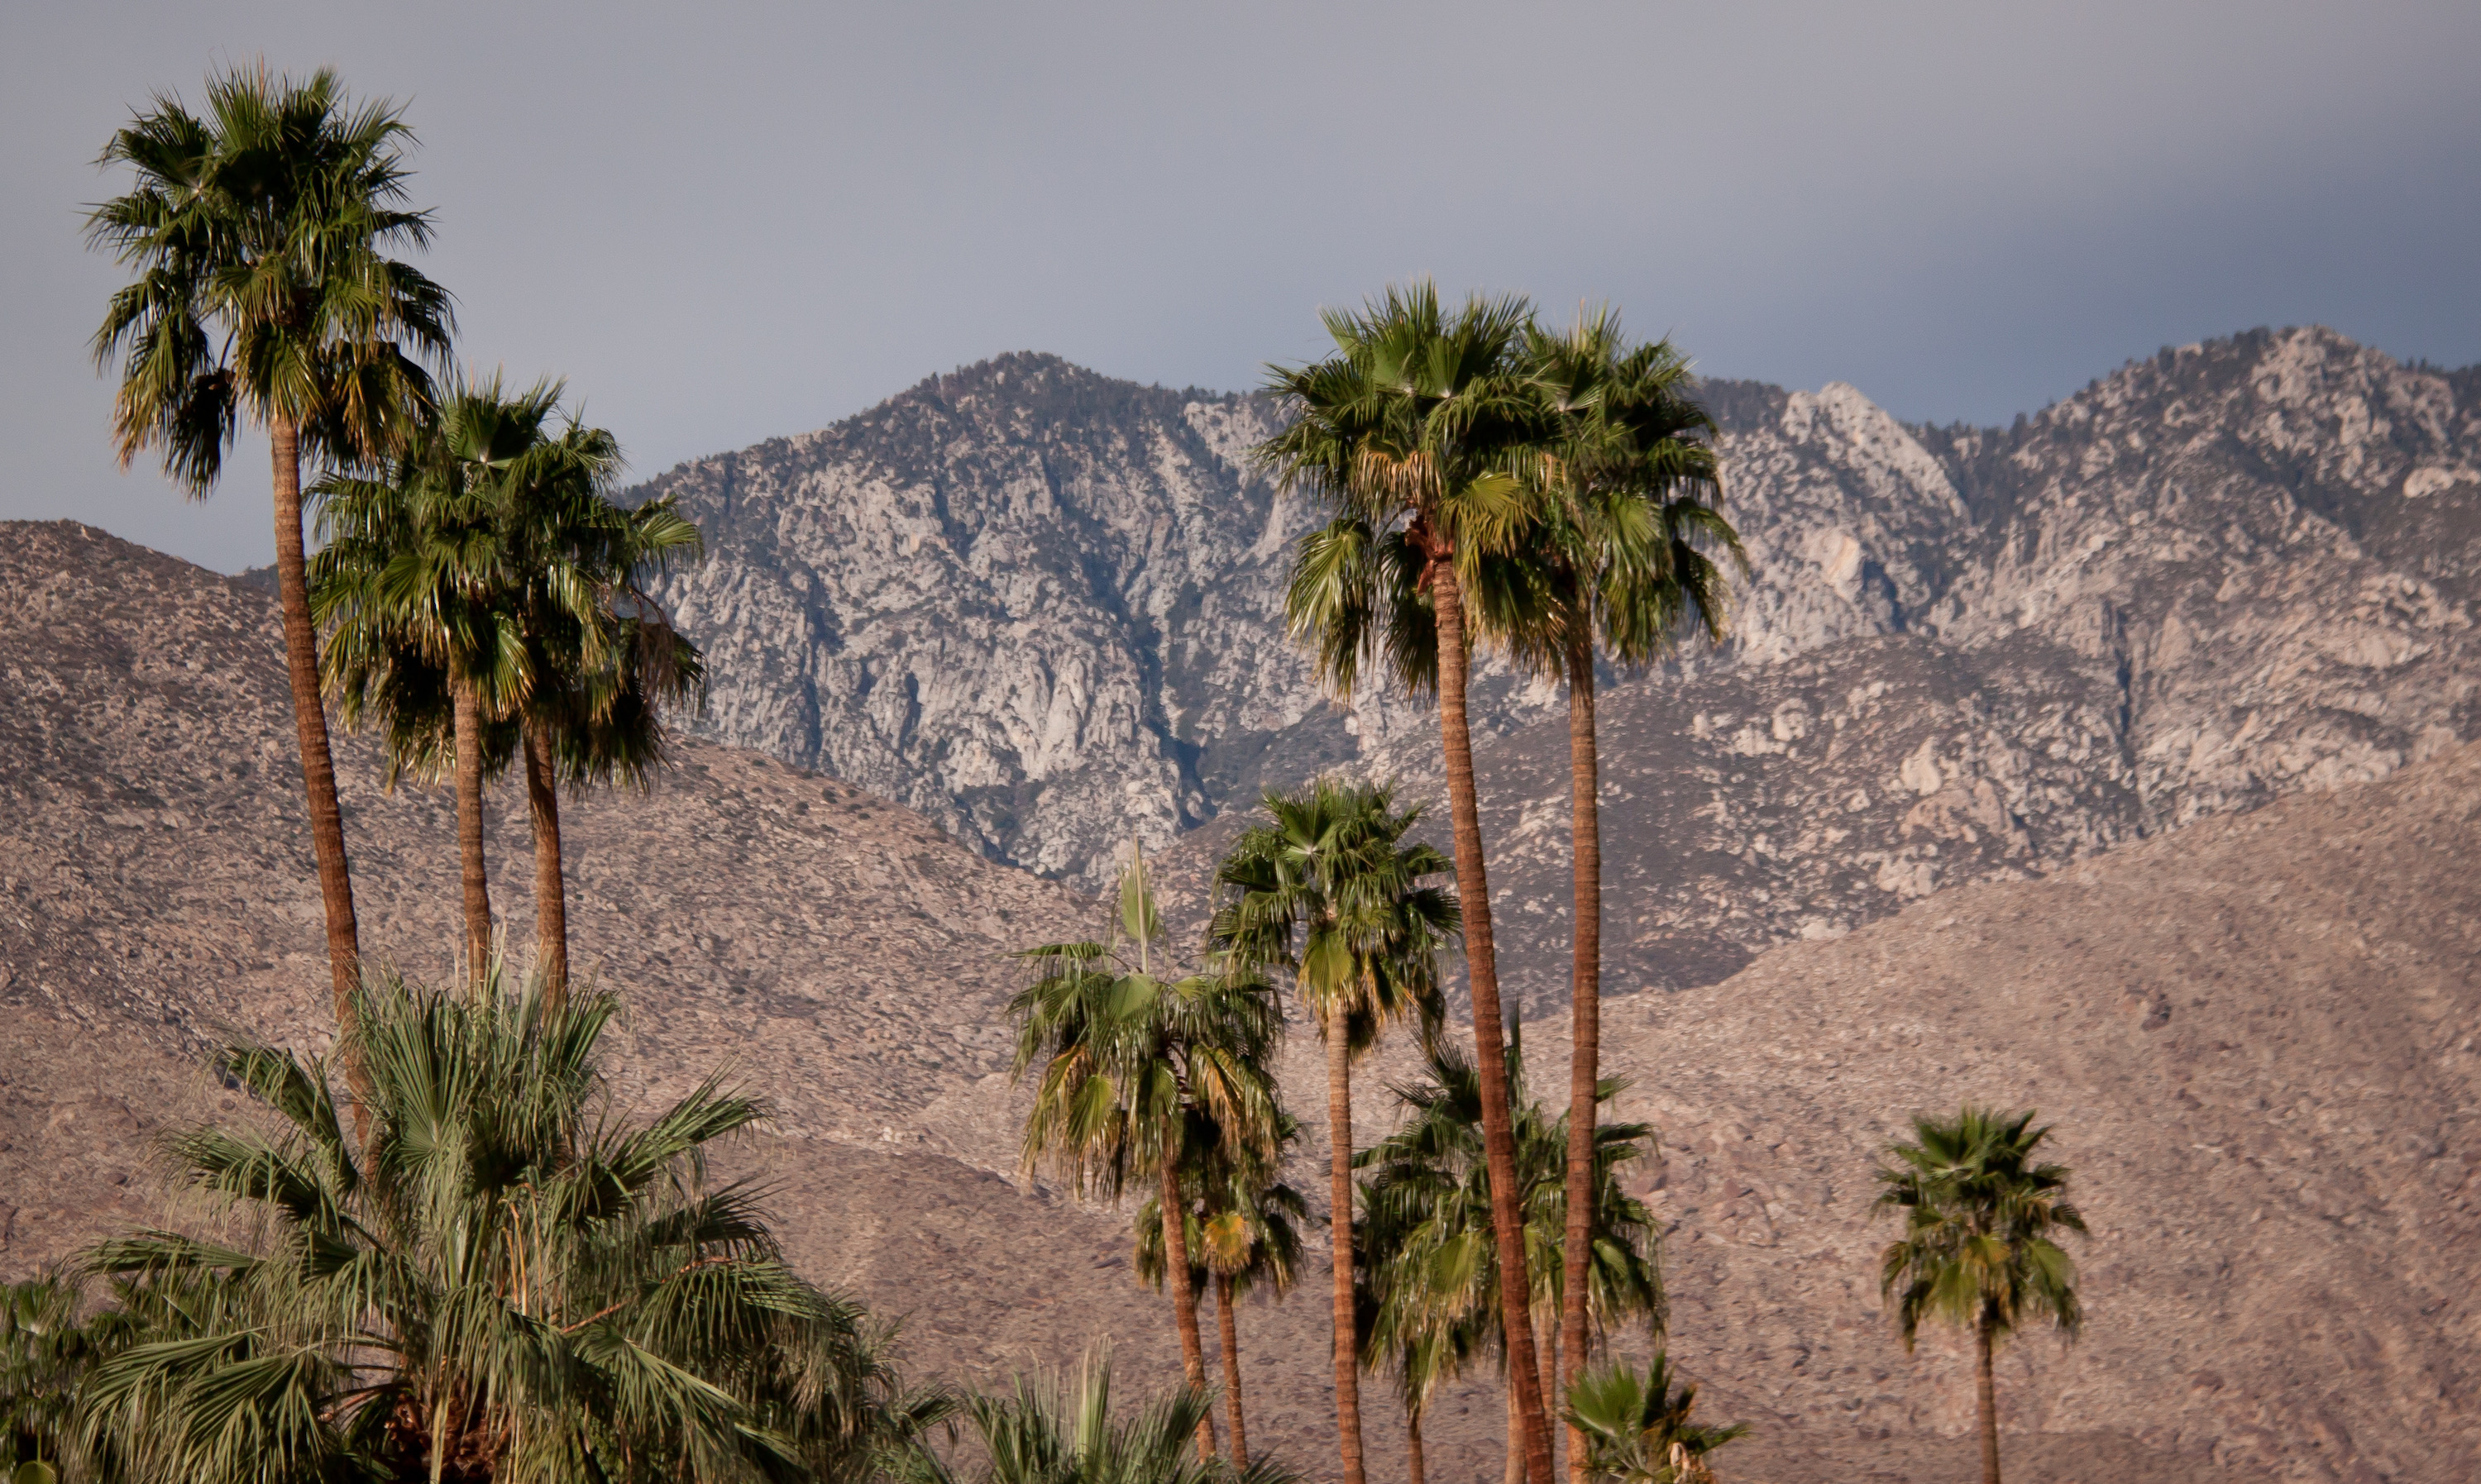 Agua Caliente Band water case draws attention in Supreme Court appeal